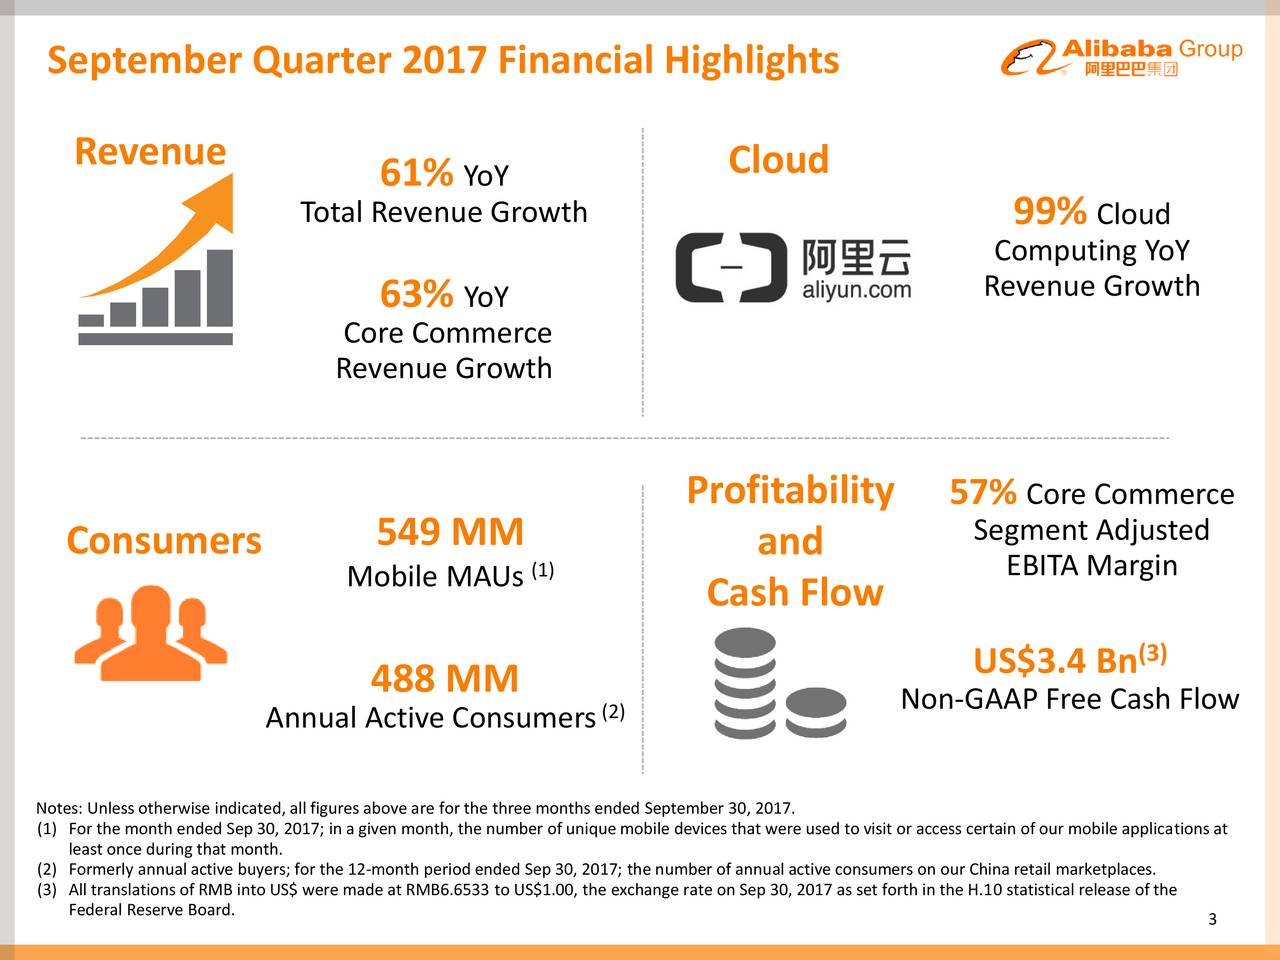 Revenue Cloud 61% YoY Total Revenue Growth 99% Cloud Computing YoY Revenue Growth 63% YoY Core Commerce Revenue Growth Profitability 57% Core Commerce Consumers 549 MM and Segment Adjusted Mobile MAUs (1) EBITA Margin Cash Flow US$3.4 Bn (3) 488 MM (2) Non-GAAP Free Cash Flow Annual Active Consumers Notes: Unless otherwise indicated, all figures above are for the three months ended September 30, 2017. (1) For the month ended Sep 30, 2017; in a given month, the number of unique mobile devices that were used to visit or access certain of our mobile applications at (2) Formerly annual active buyers; for the 12-month period ended Sep 30, 2017; the number of annual active consumers on our China retail marketplaces. (3) All translations of RMB into US$ were made at RMB6.6533 to US$1.00, the exchange rate on Sep 30, 2017 as set forth in the H.10 statistical release of the Federal Reserve Board. 3